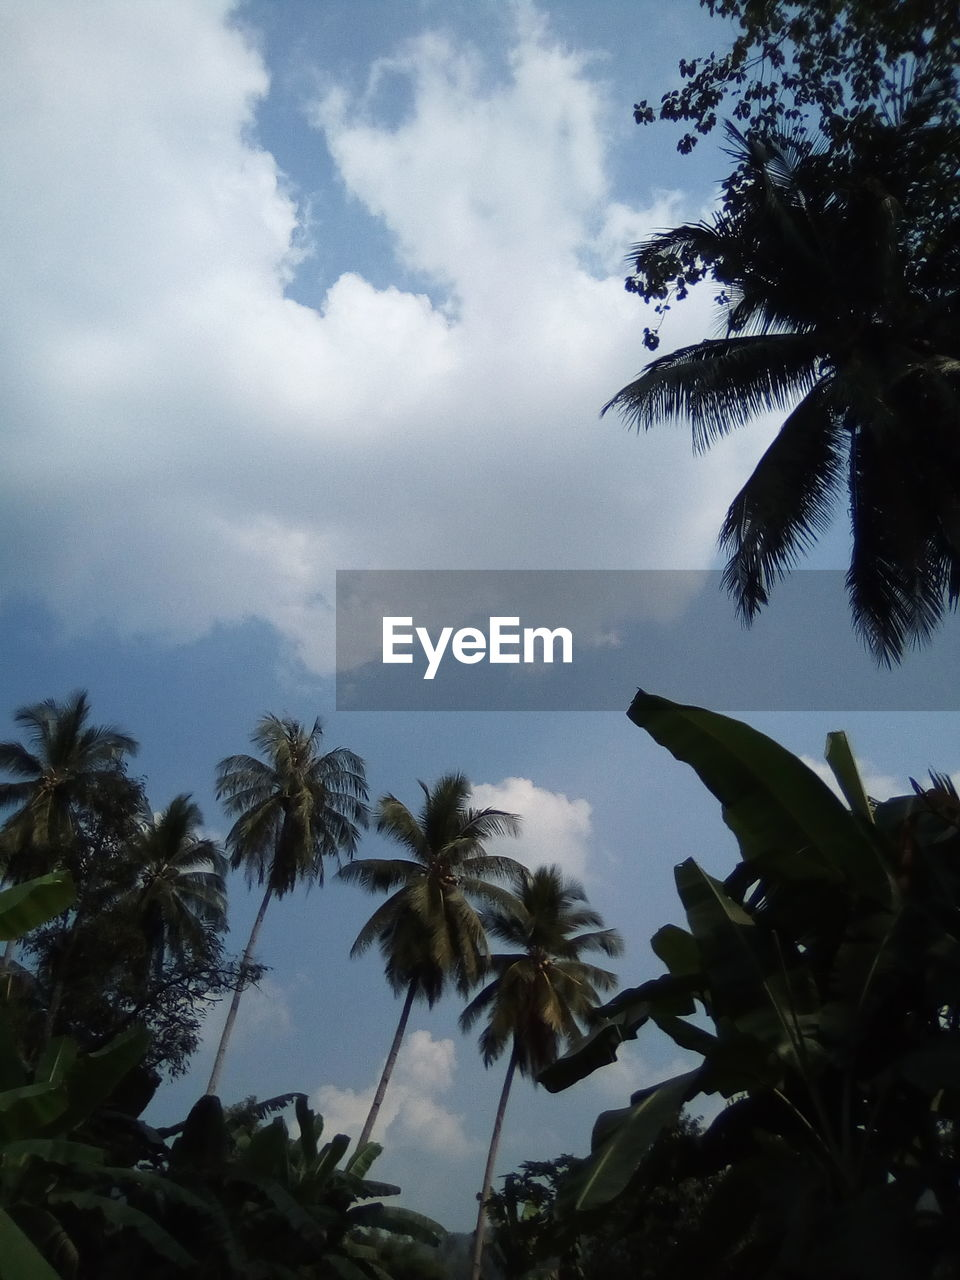 sky, palm tree, tropical climate, cloud - sky, low angle view, plant, tree, growth, beauty in nature, nature, leaf, tranquility, no people, day, plant part, outdoors, tranquil scene, silhouette, scenics - nature, coconut palm tree, tropical tree, palm leaf